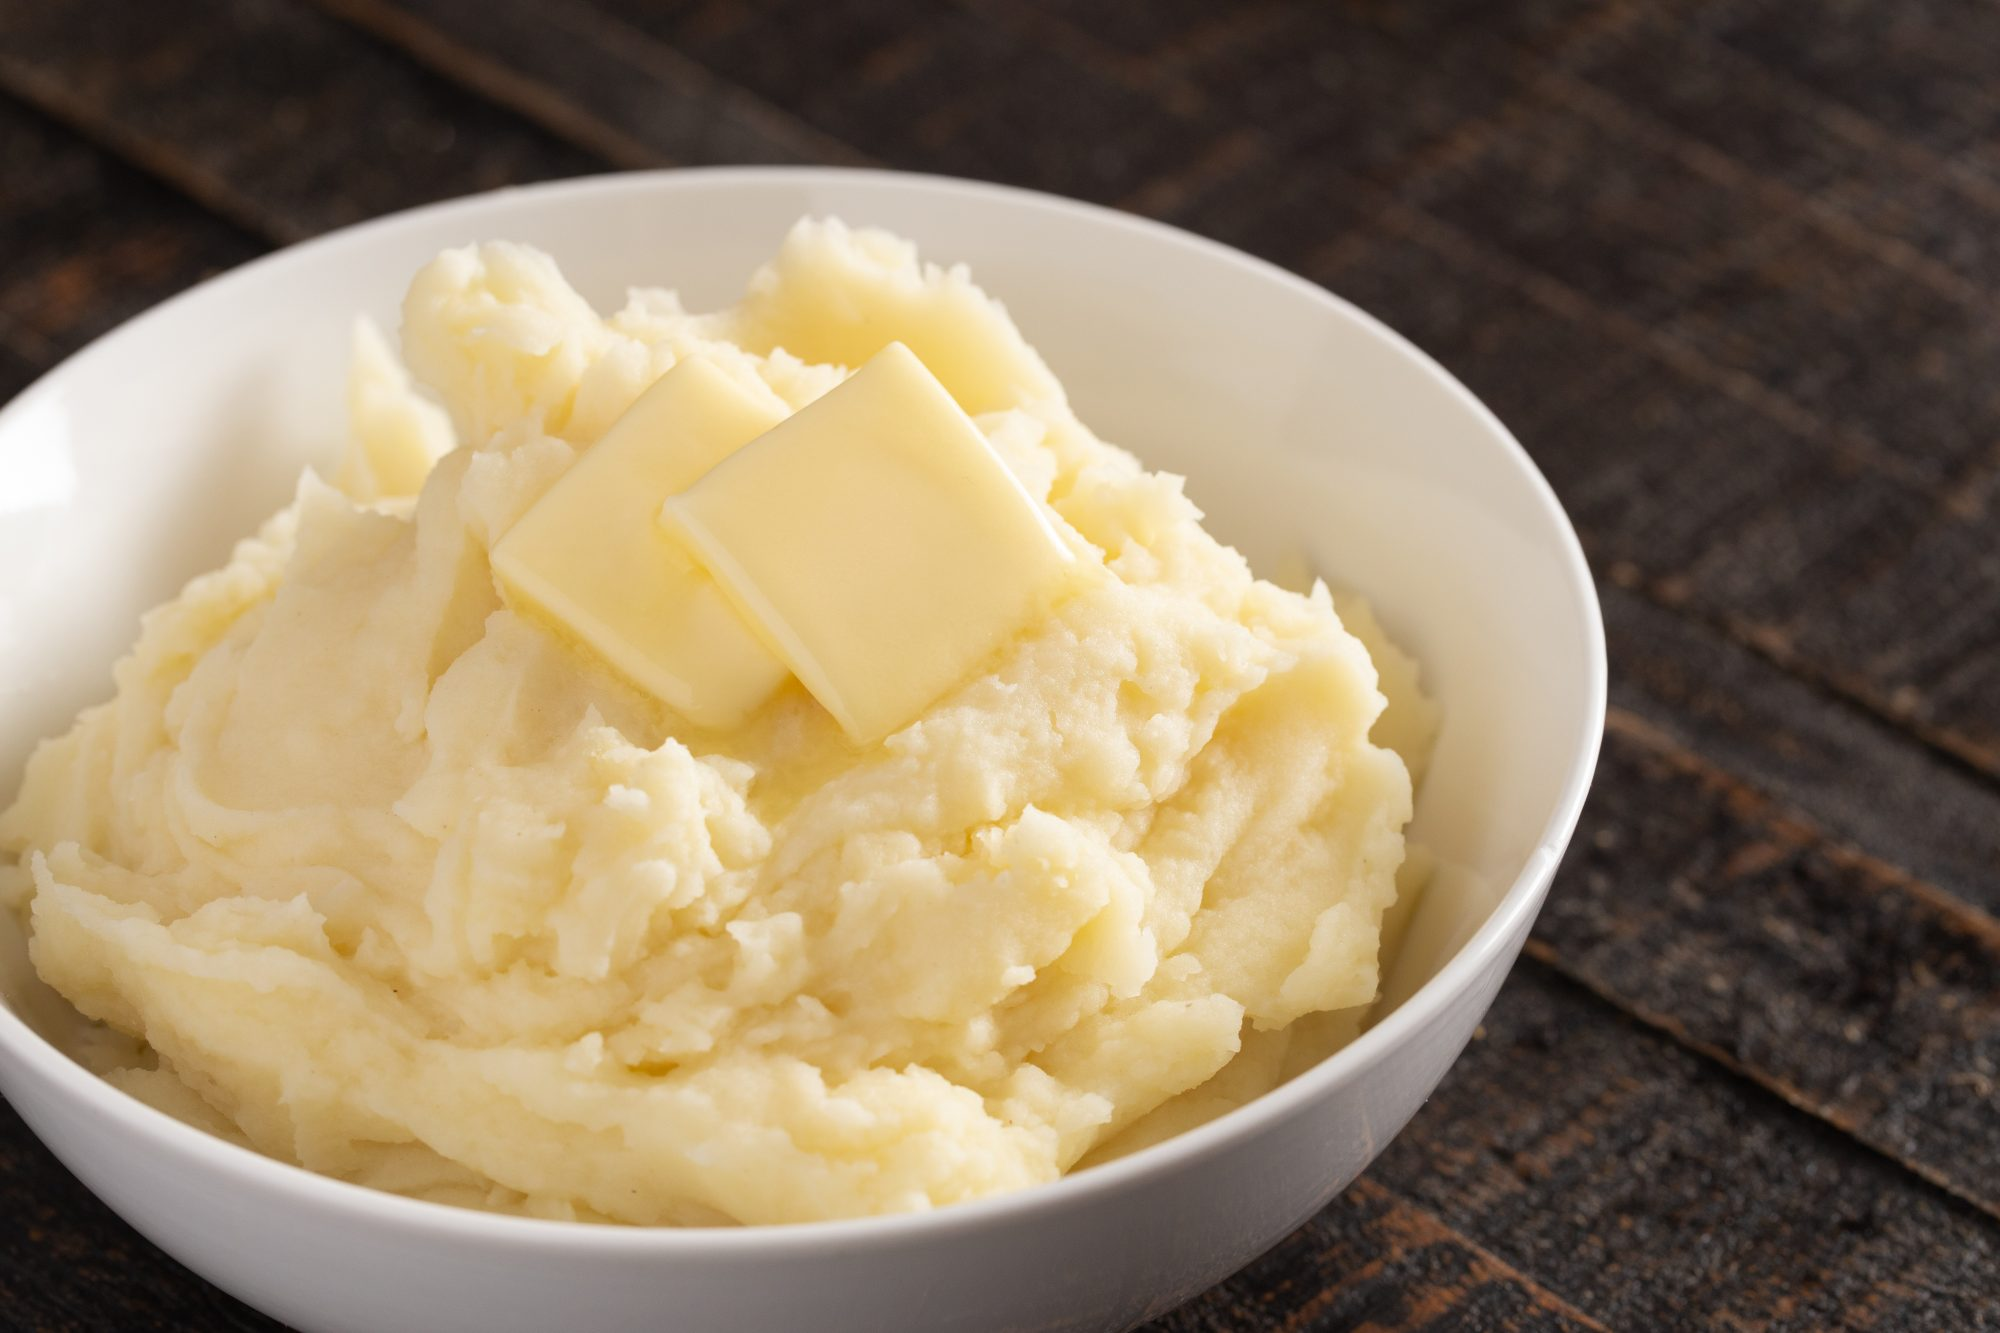 010620_Getty Instant Mashed Potatoes